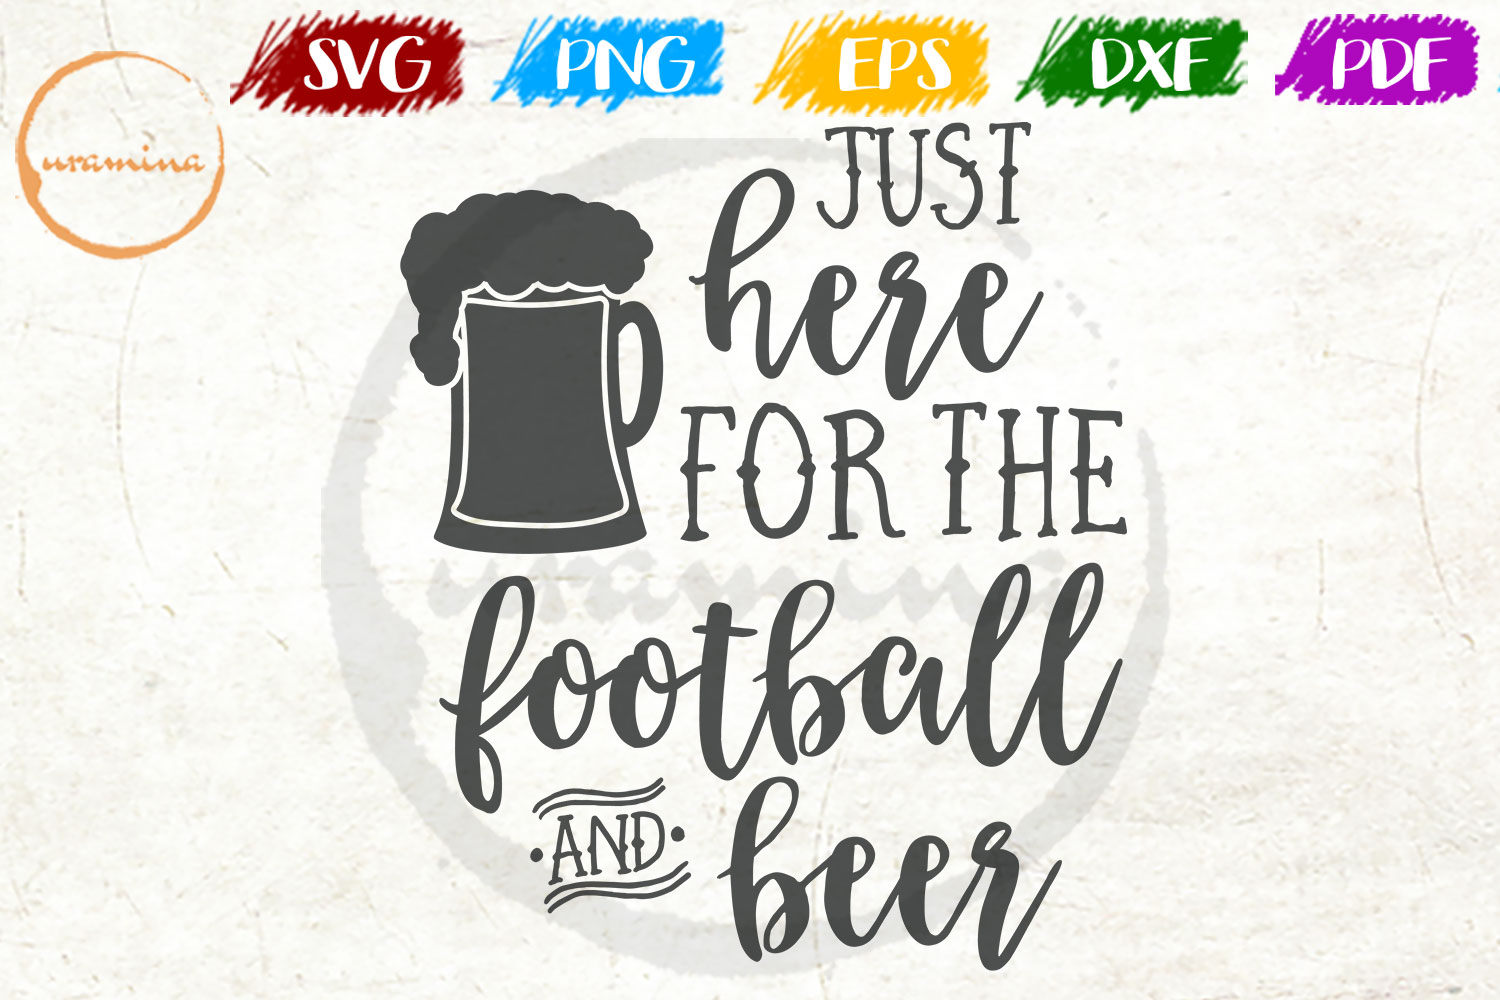 Download Free Just Here For The Football And Beer Graphic By Uramina for Cricut Explore, Silhouette and other cutting machines.